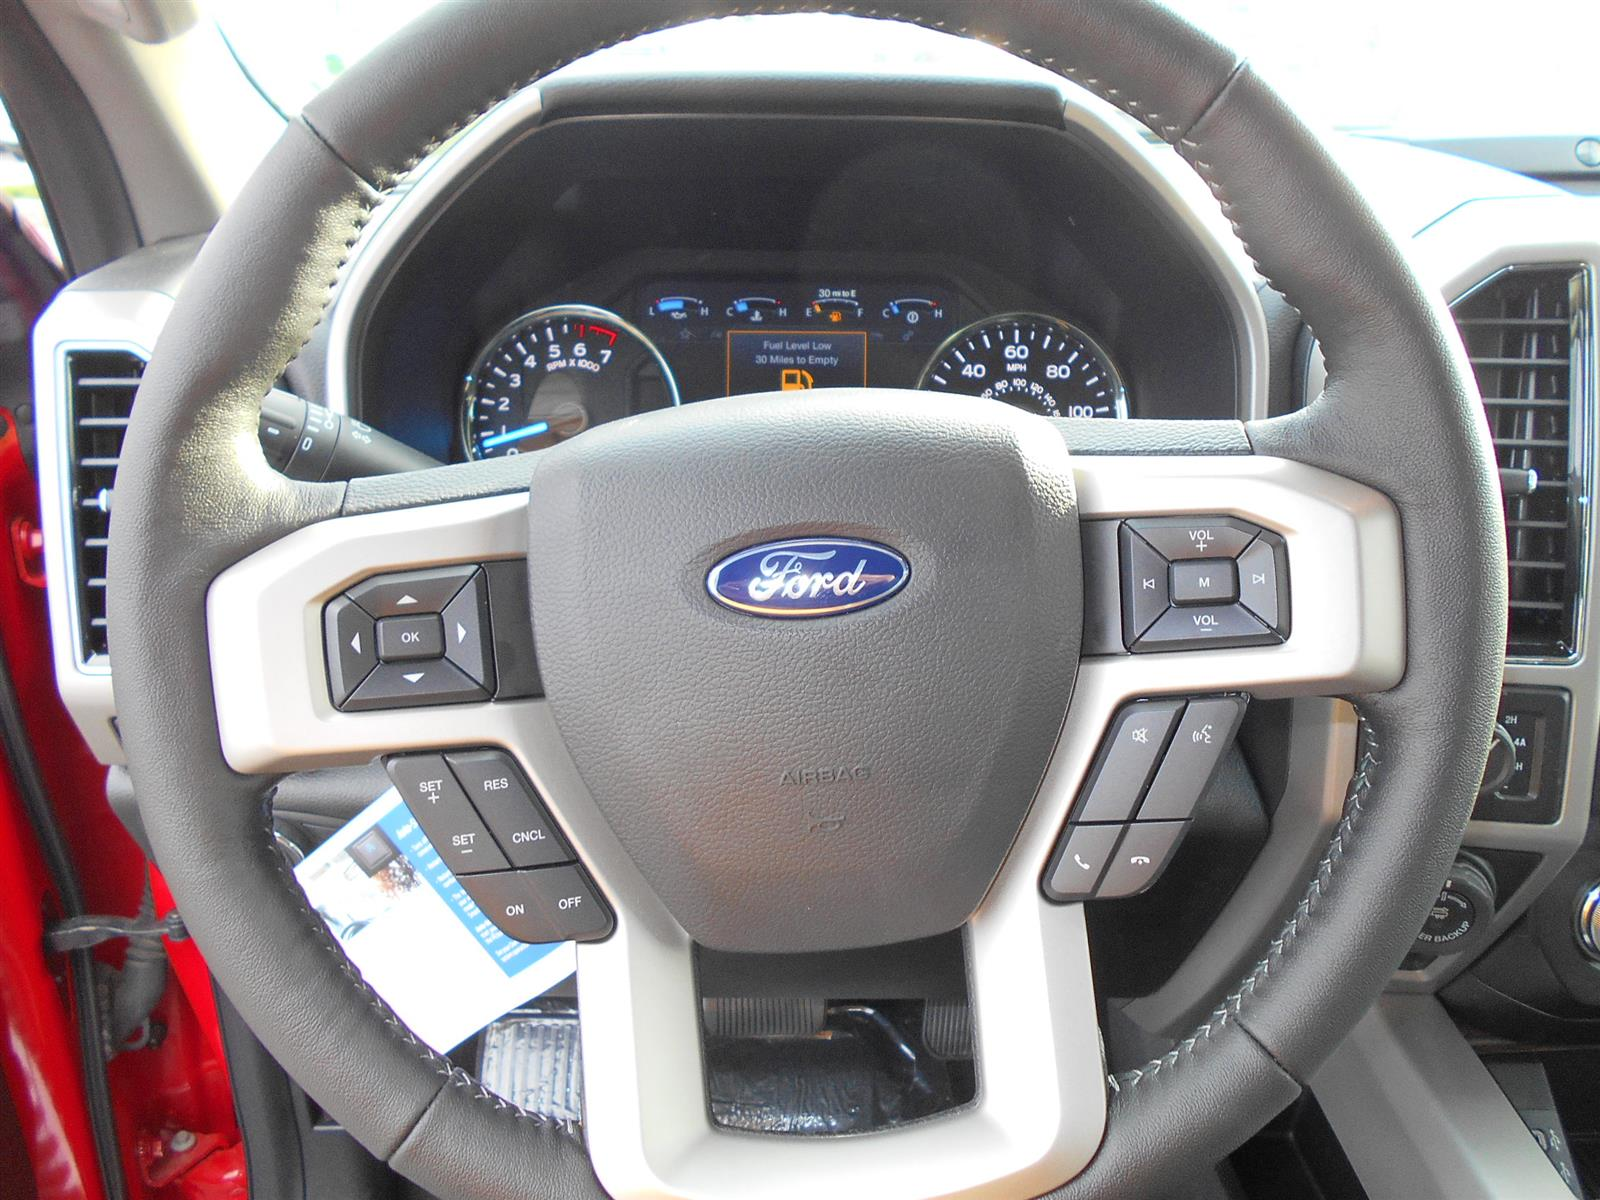 2019 Ford F-150 SuperCrew Cab 4x4, Cab Chassis #55992 - photo 3